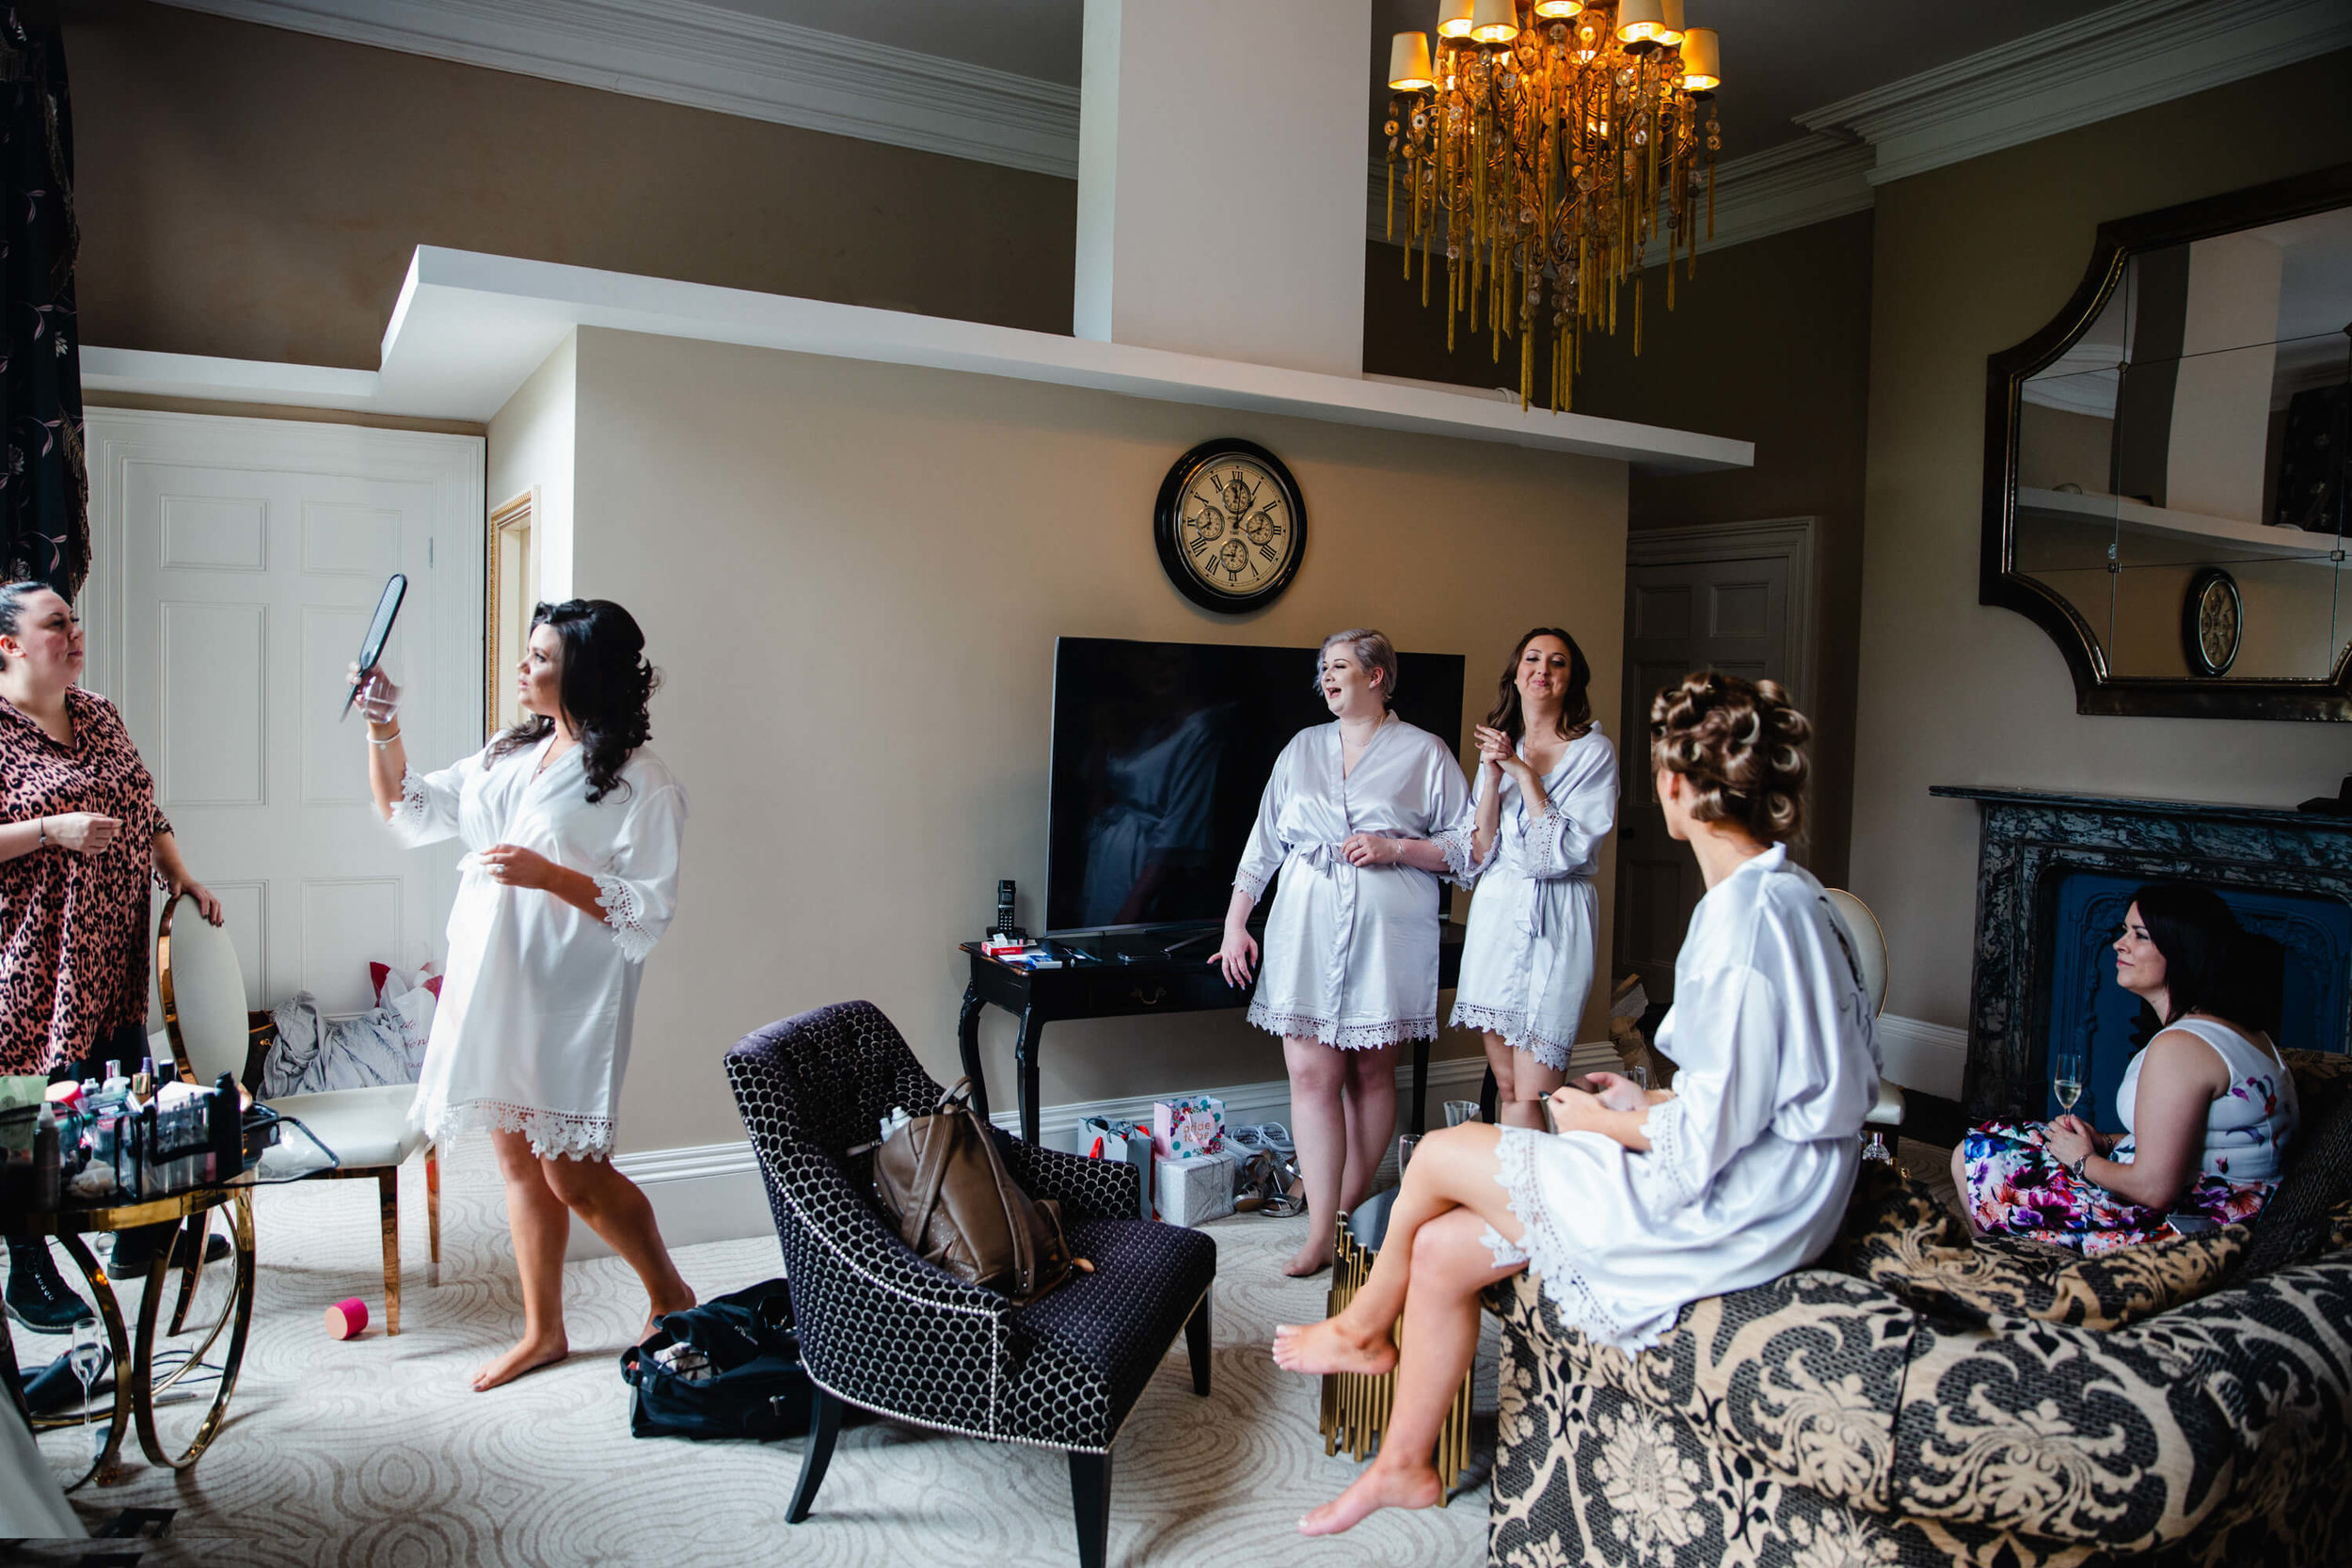 wide angle lens room photograph of bridal suite with bride getting ready